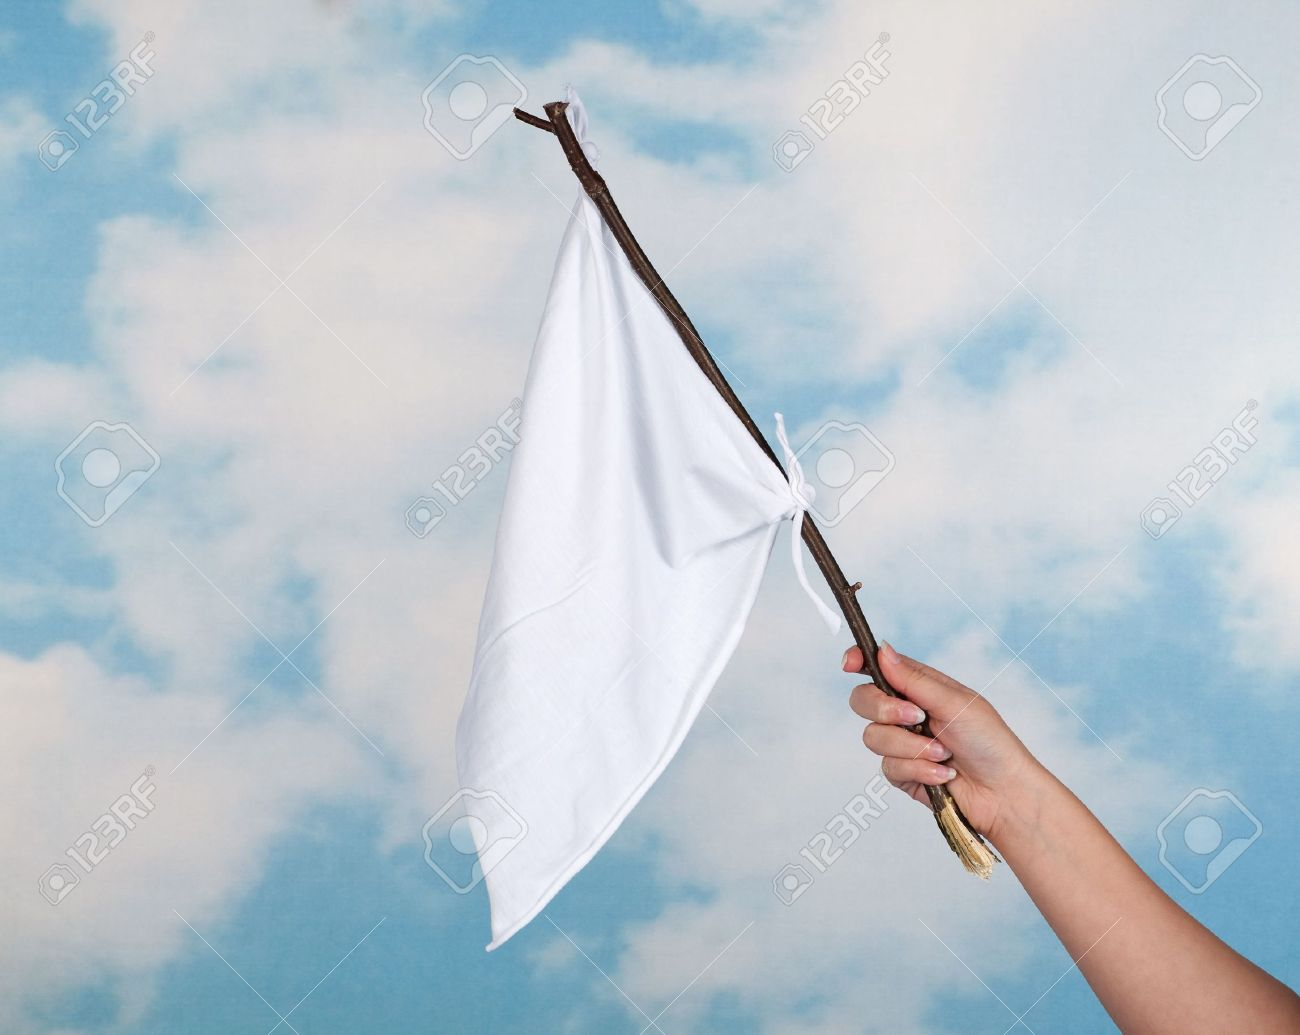 white flag on a stick